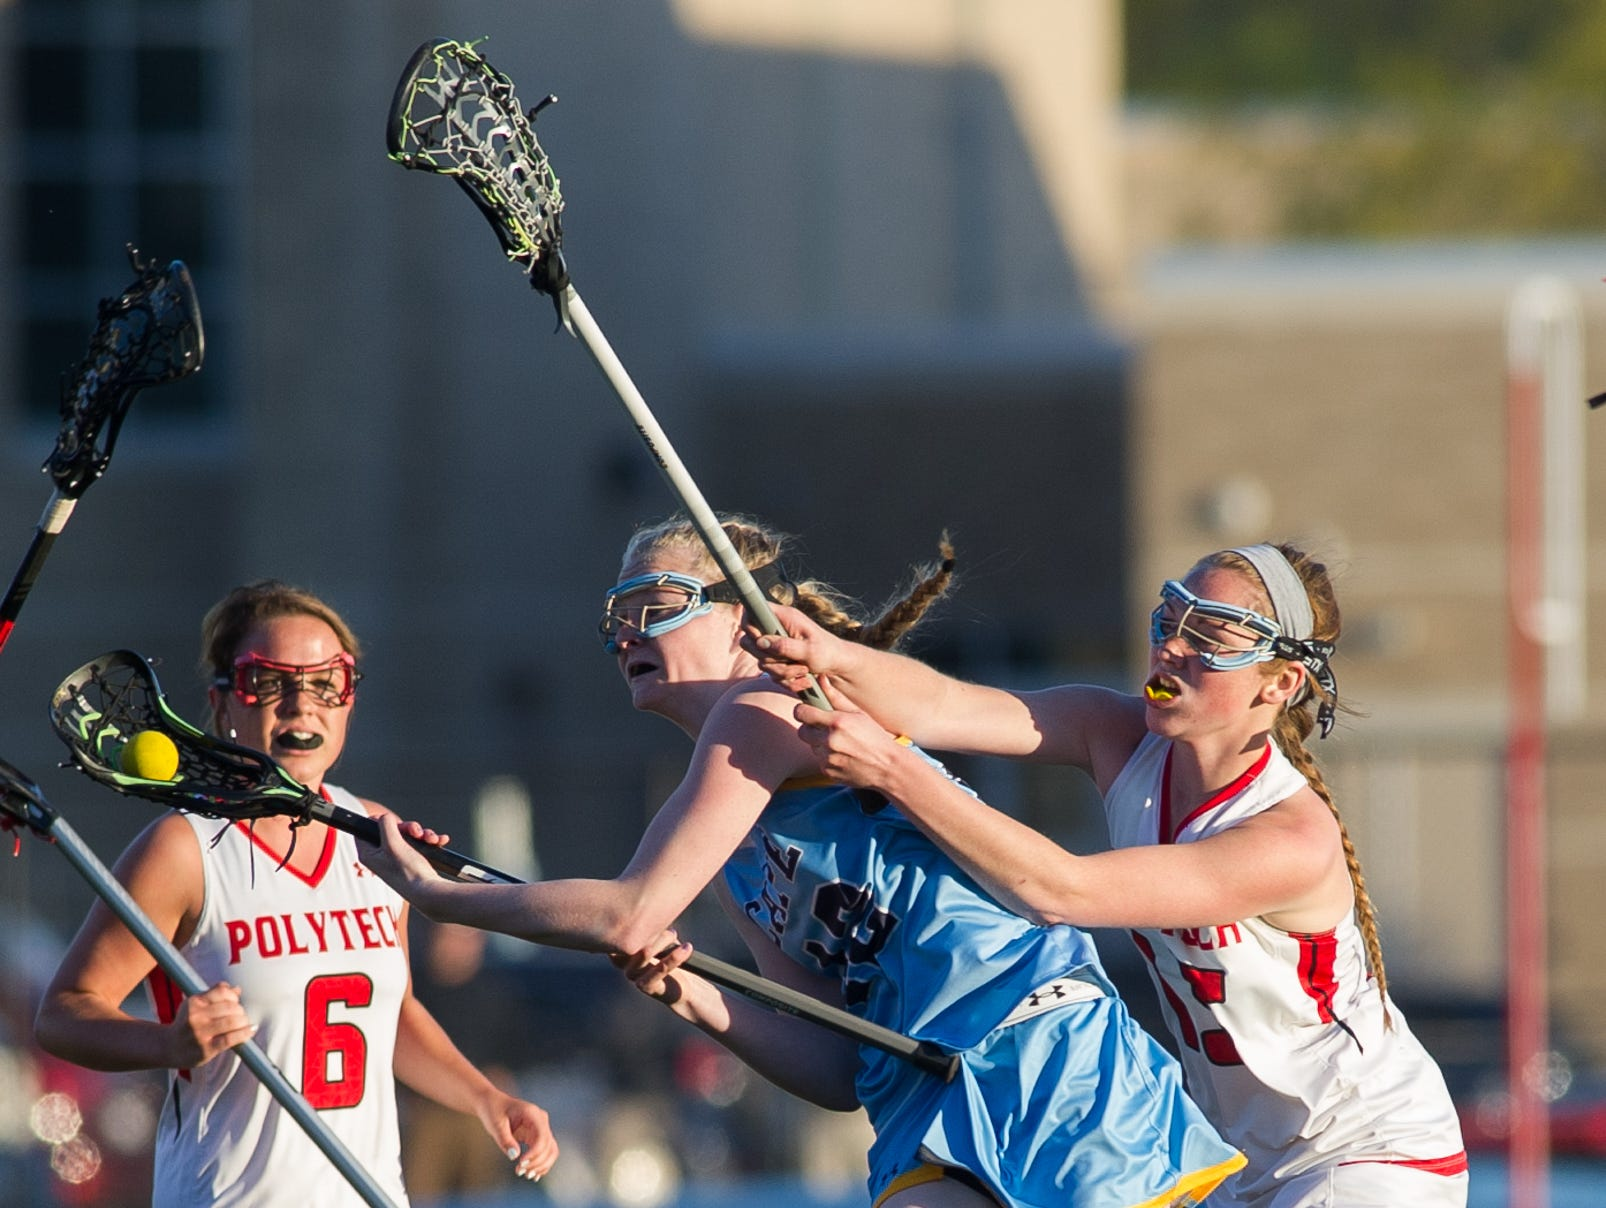 Cape Henlopen's Victoria Lockwood (12) tries to get a shot off in their win over Polytech.